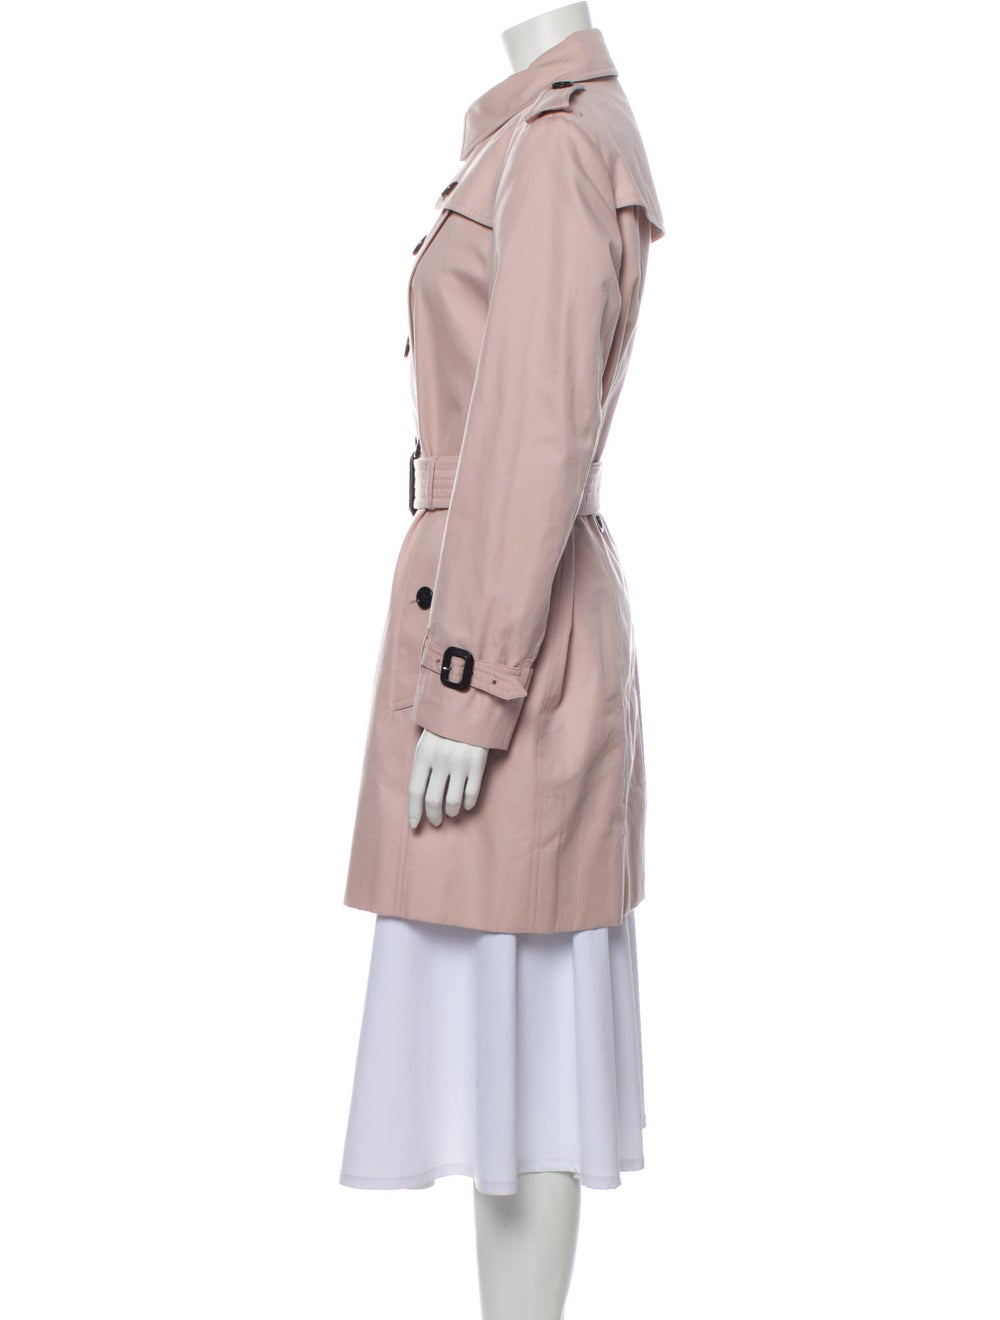 Burberry Trench Coat Pink - image 2